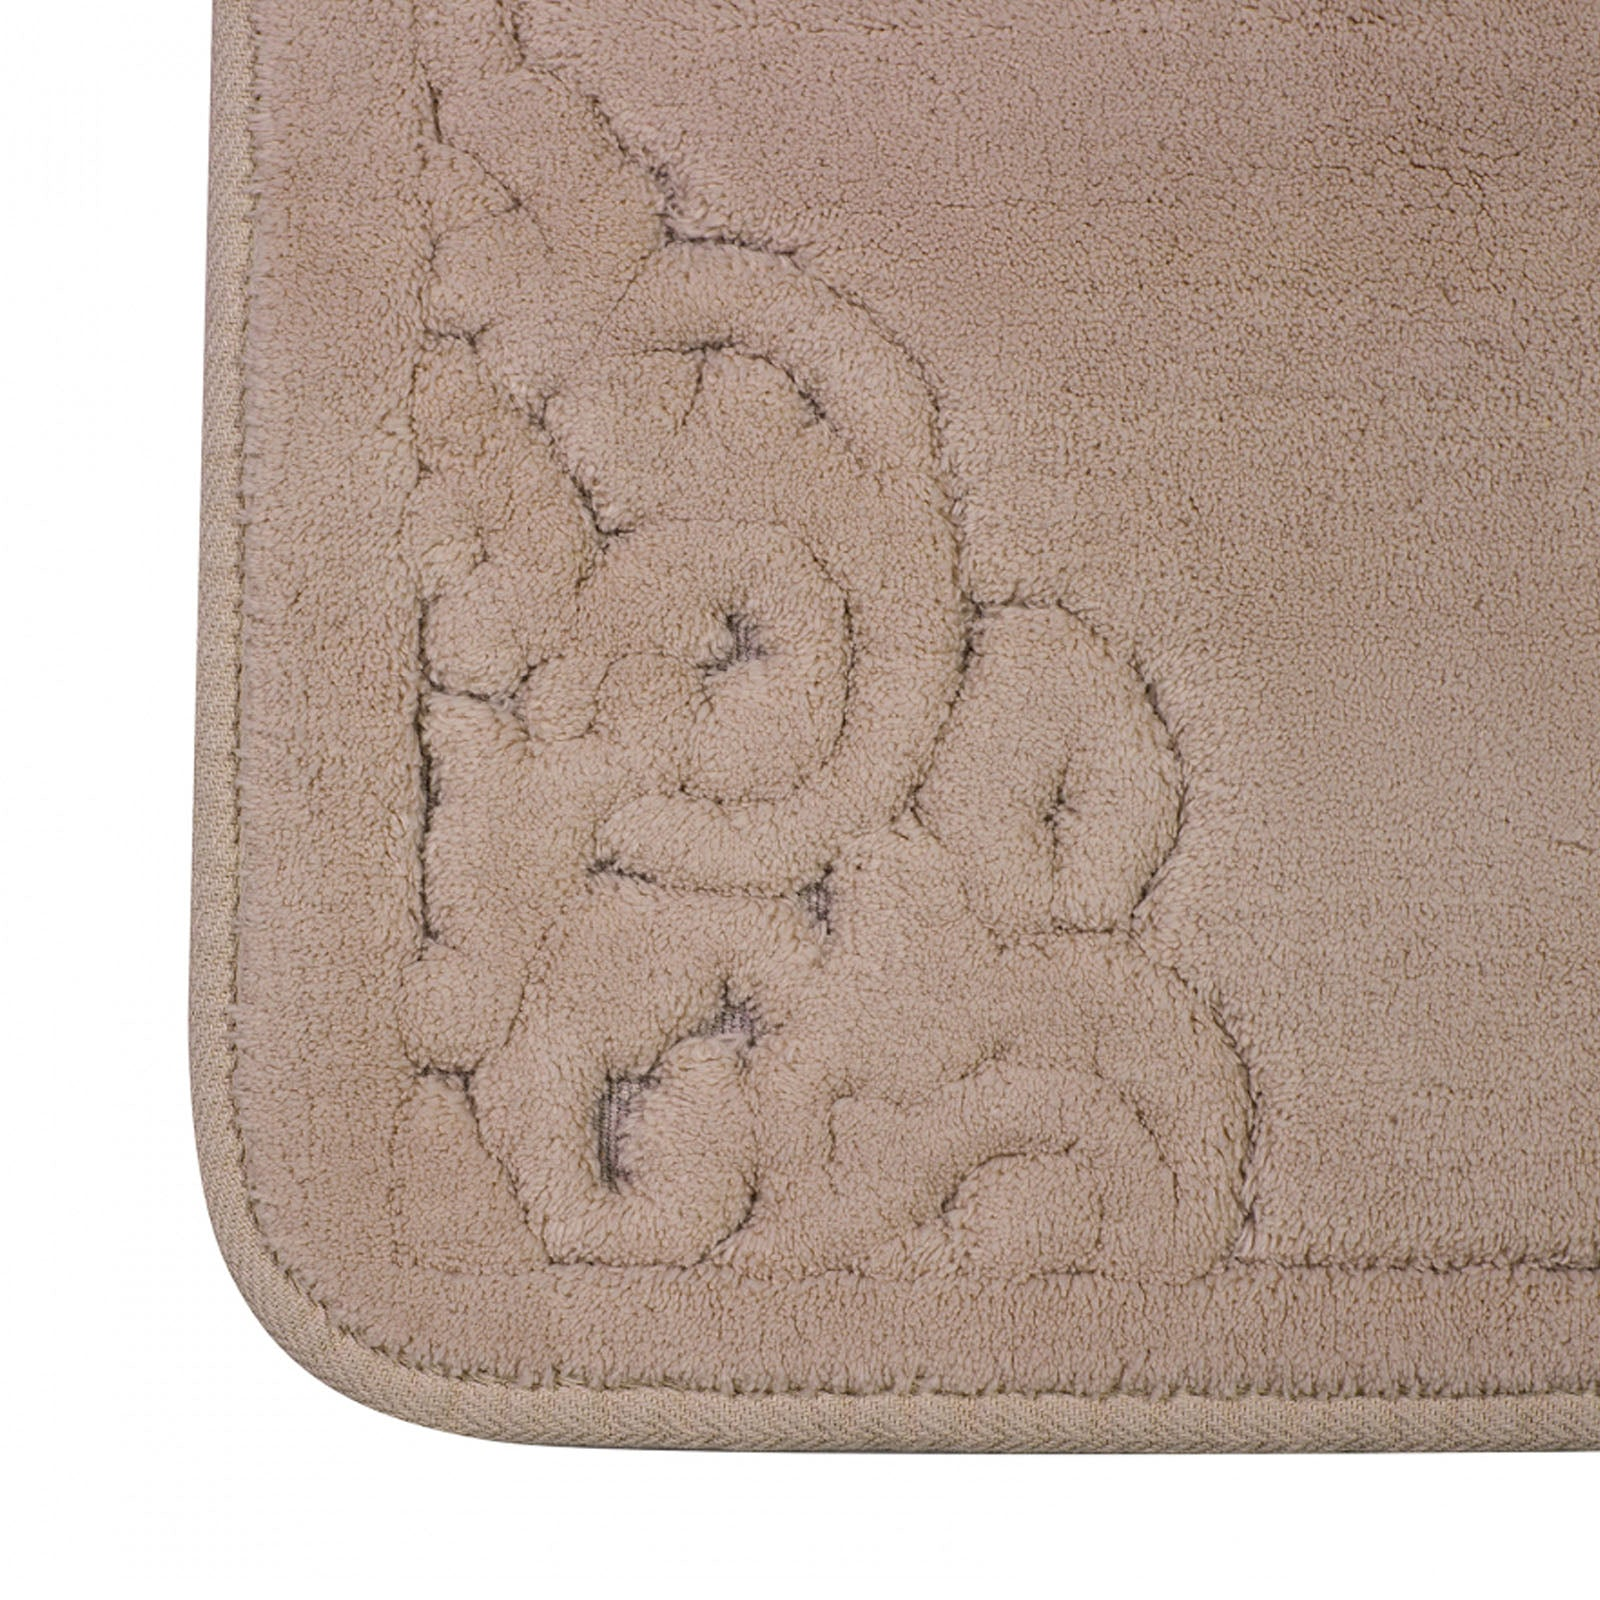 Damila Beige 2 Piece Bath Mat 200.15.01.0265 -  سجادة حمام داميلا قطعتين بيج - Shop Online Furniture and Home Decor Store in Dubai, UAE at ebarza